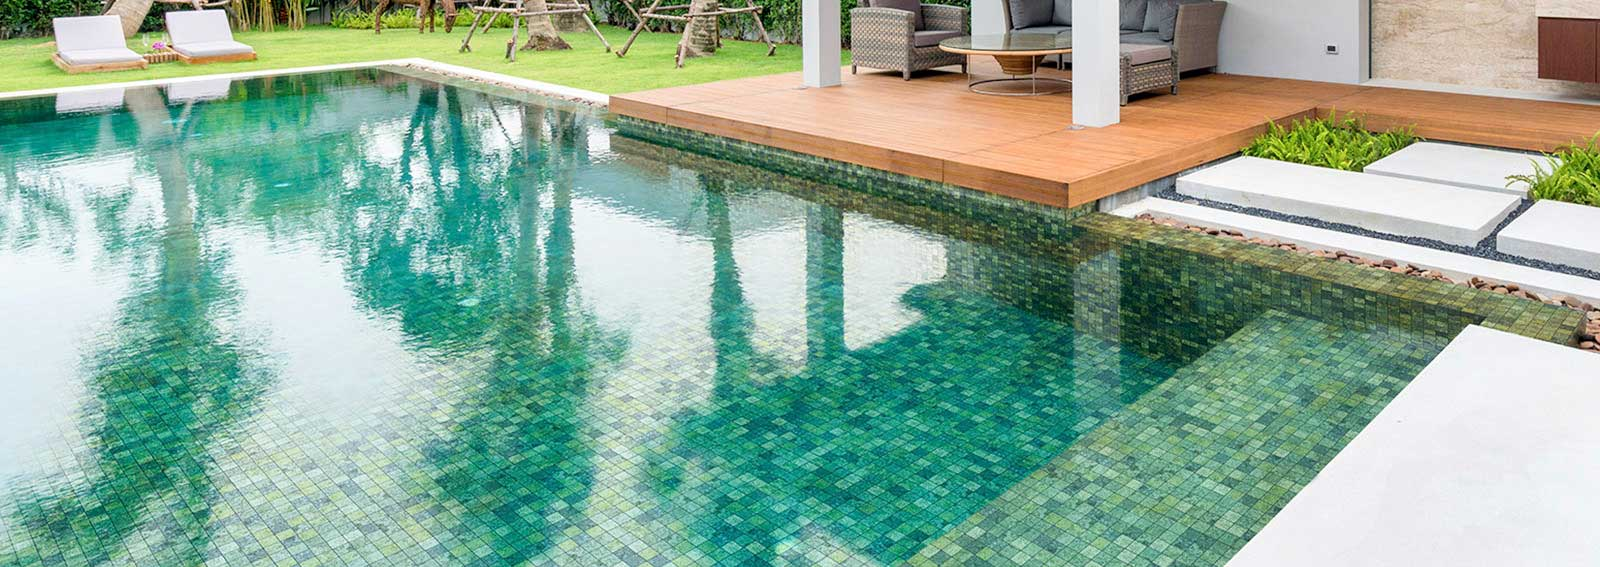 renovation carrelage piscine bali ezzari